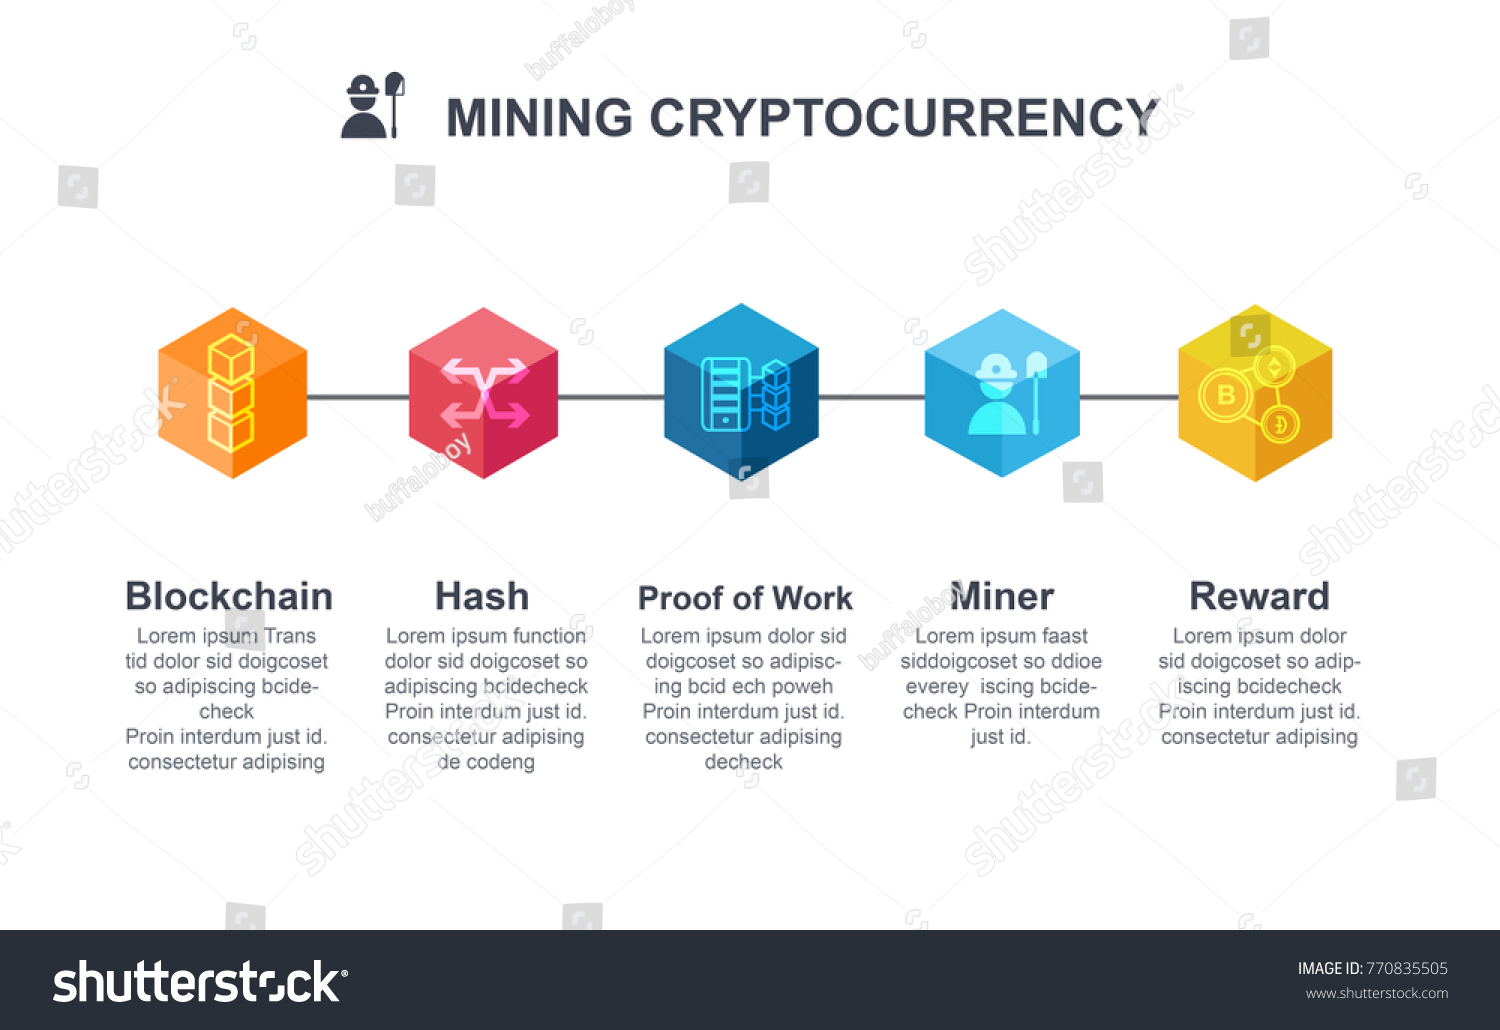 Mining Cryptocurrency Infographic Concept How About In Blockchain Technology Block Icon